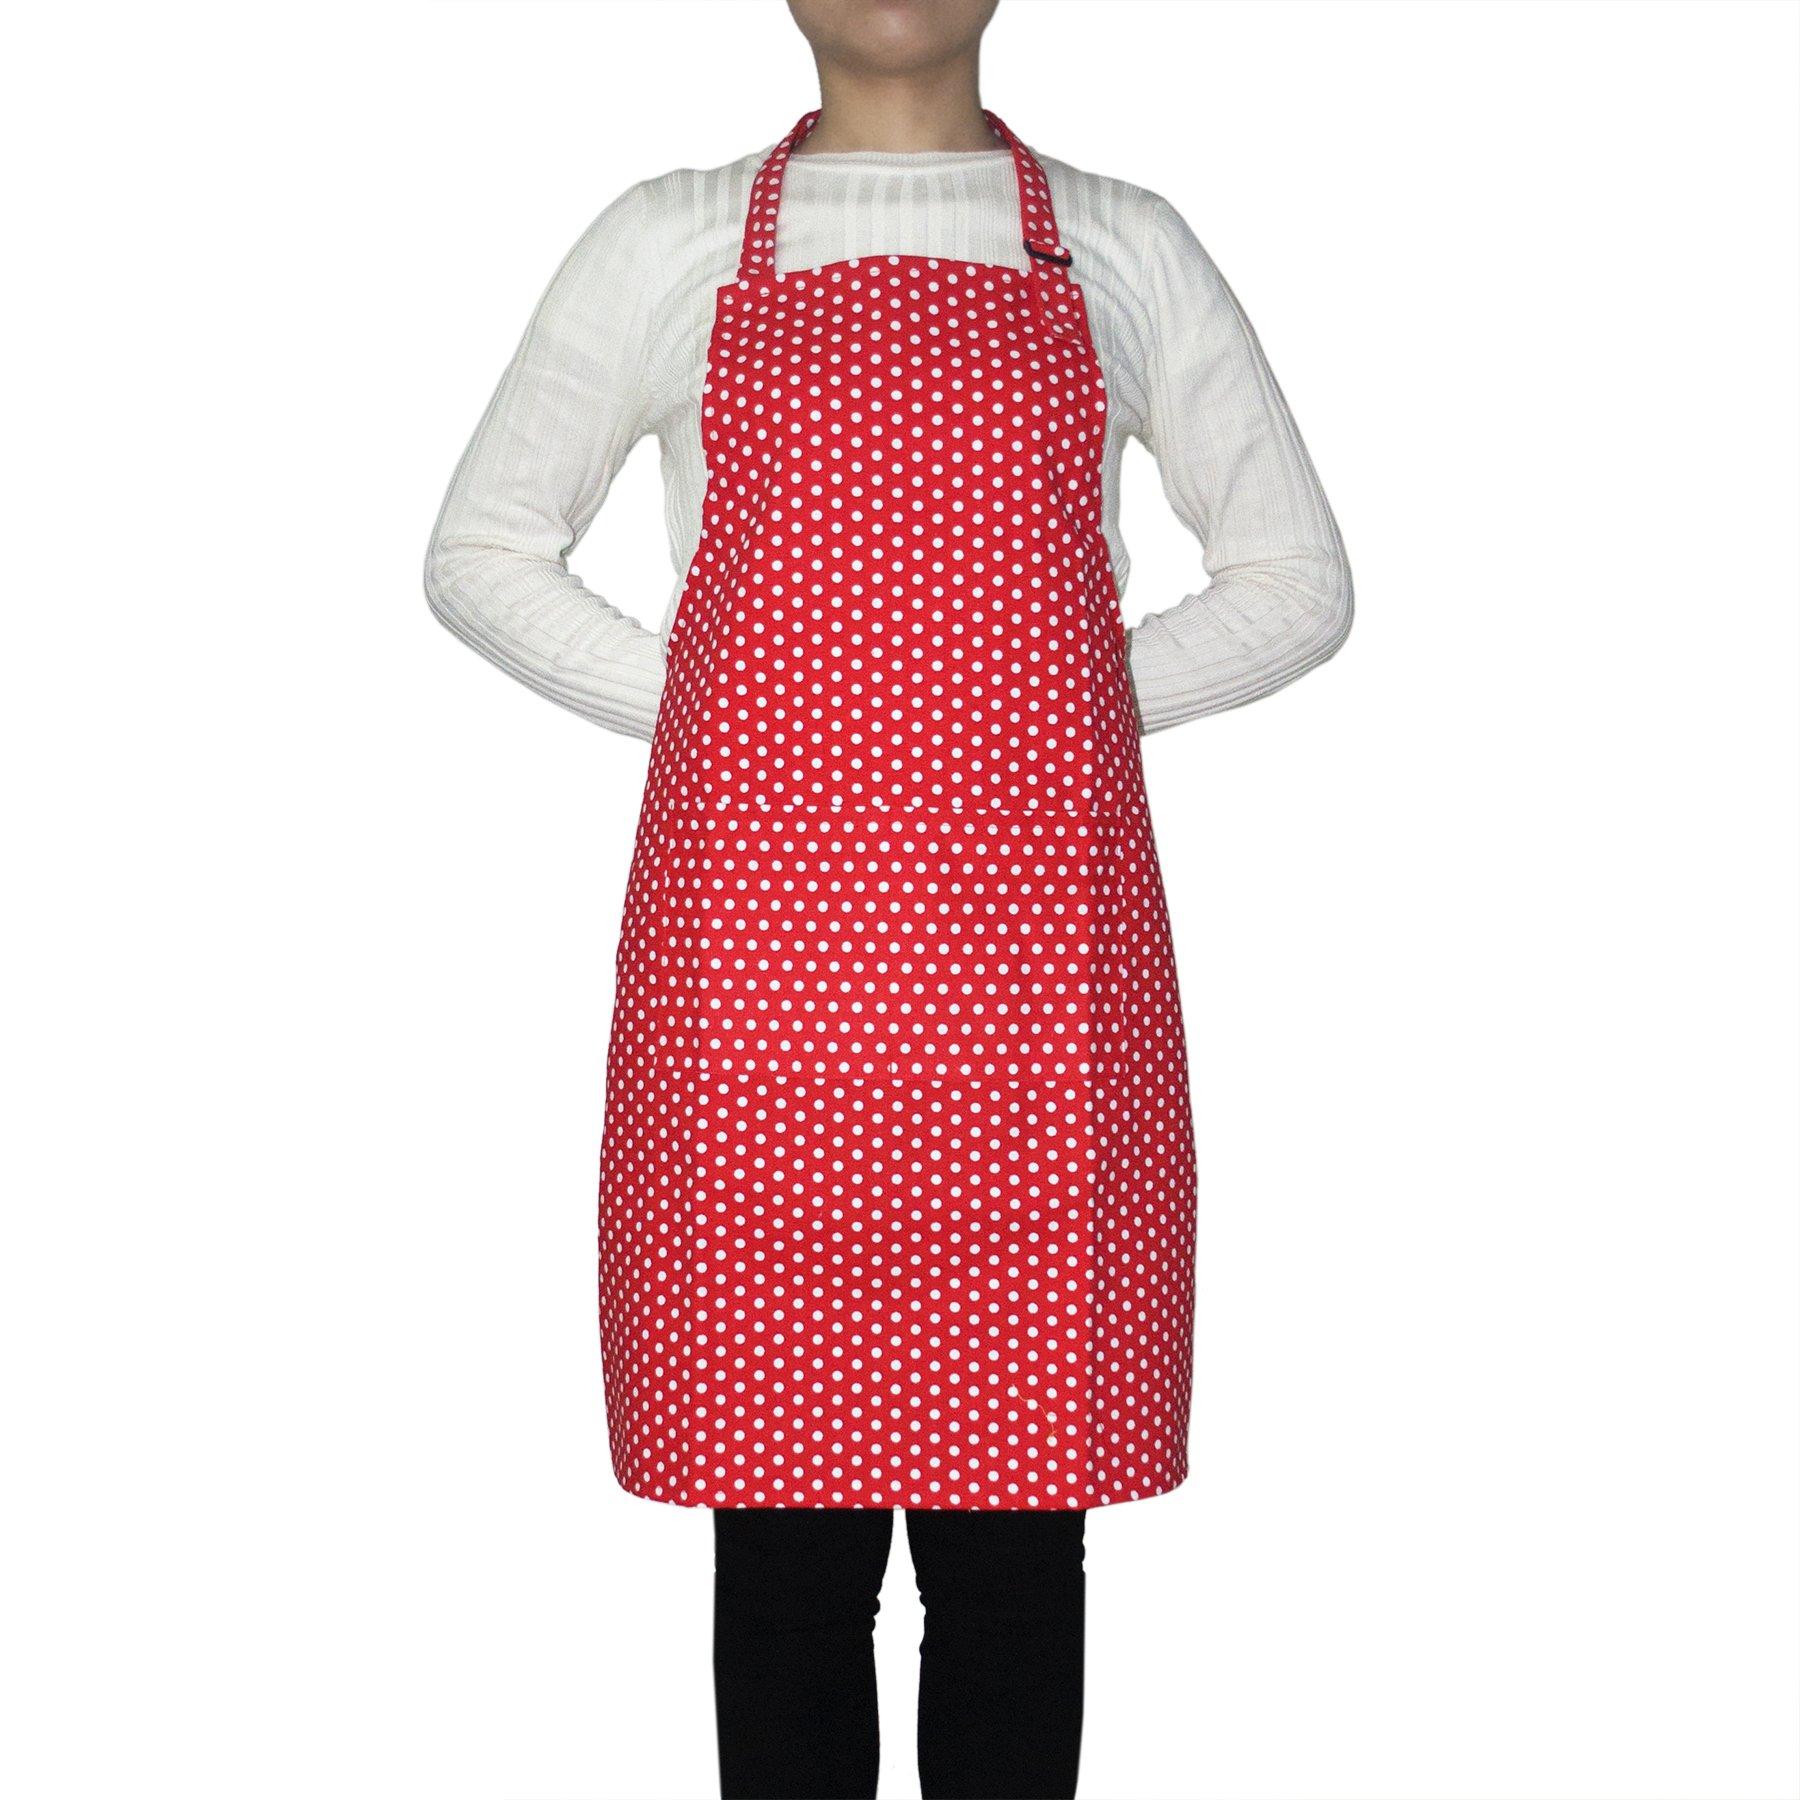 Opromo 12-Pack Cotton Canvas Adjustable Chef Kitchen Aprons-Red Dot-XL